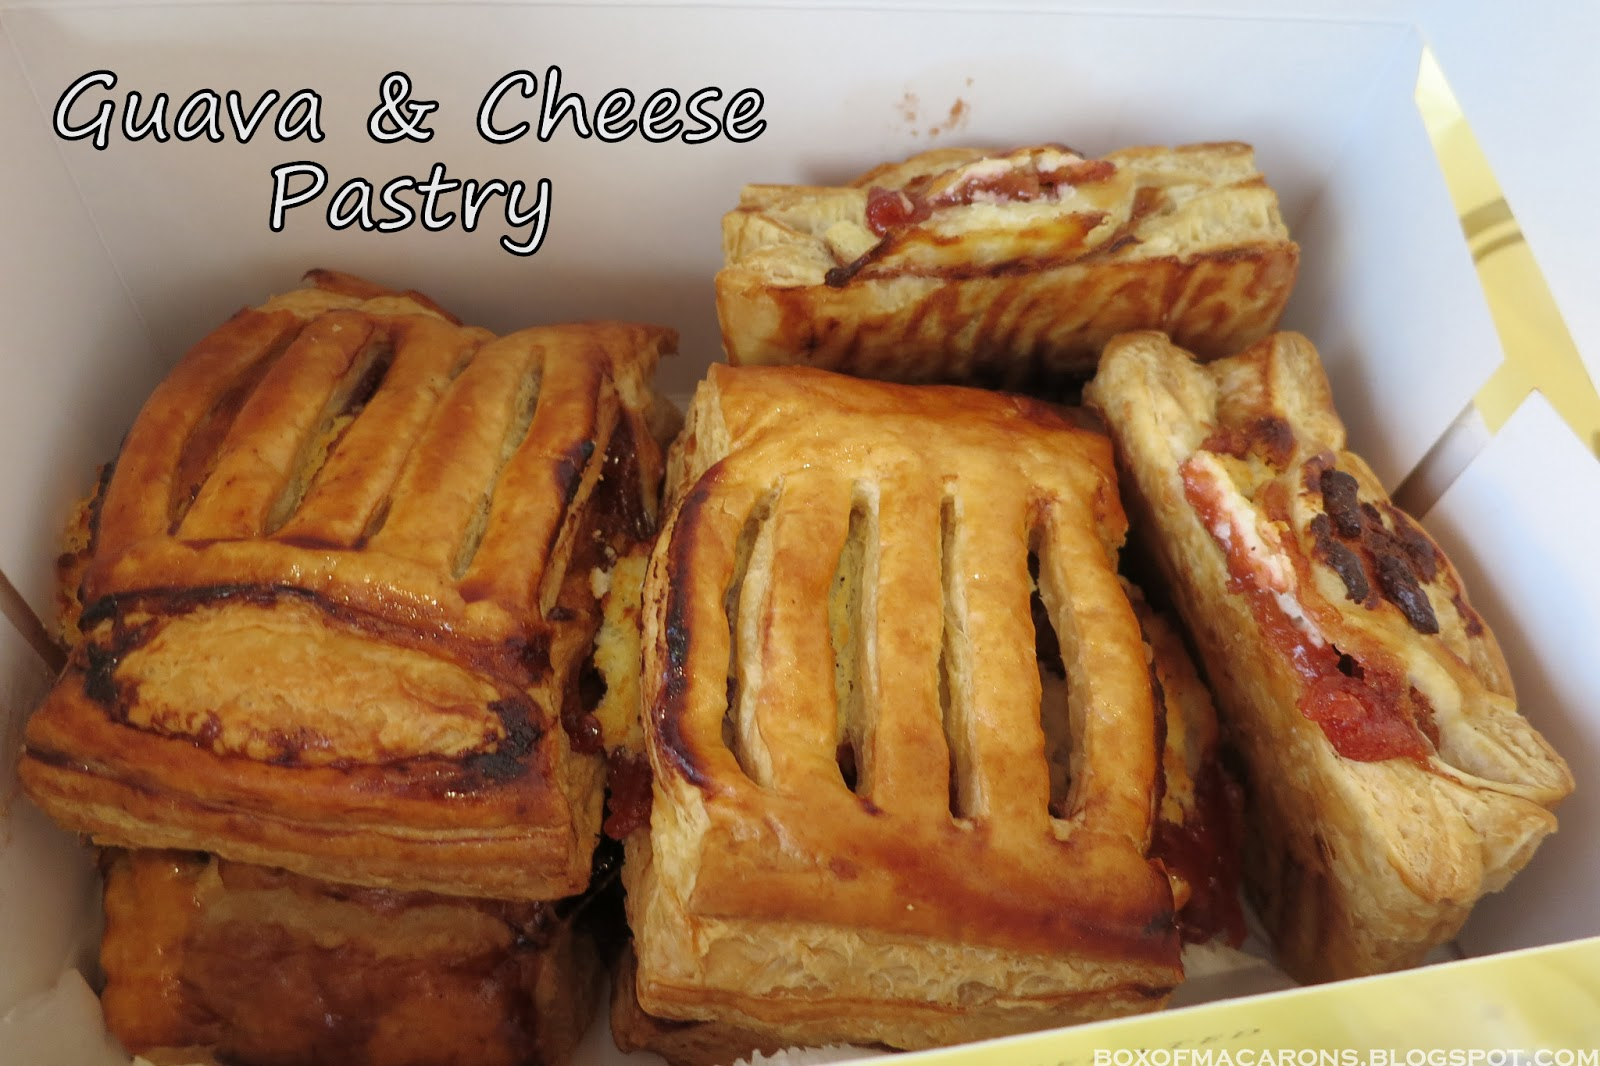 ... Cheese Pastry - Flaky puff pastry filled with guava and cream cheese